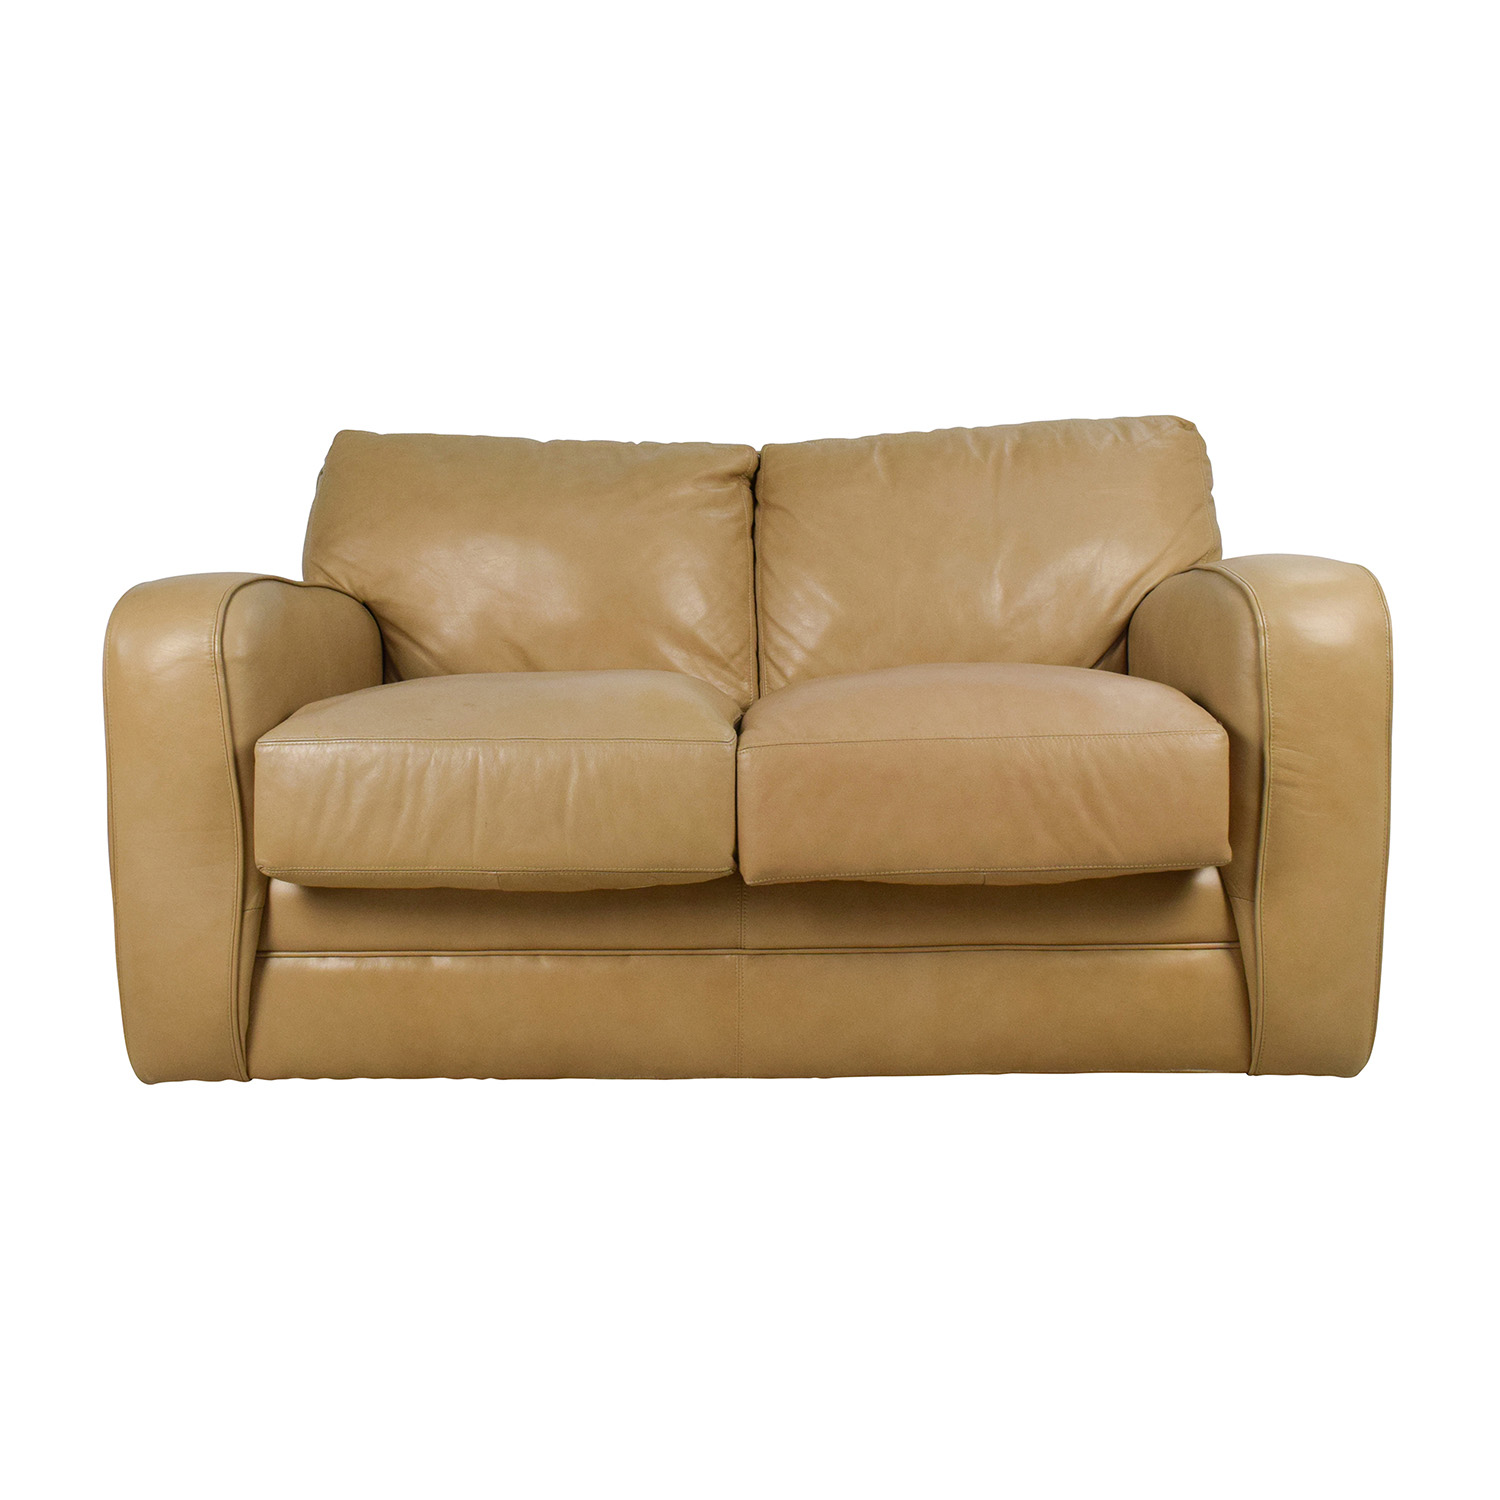 50 off beige leather loveseat sofas Sofa loveseat